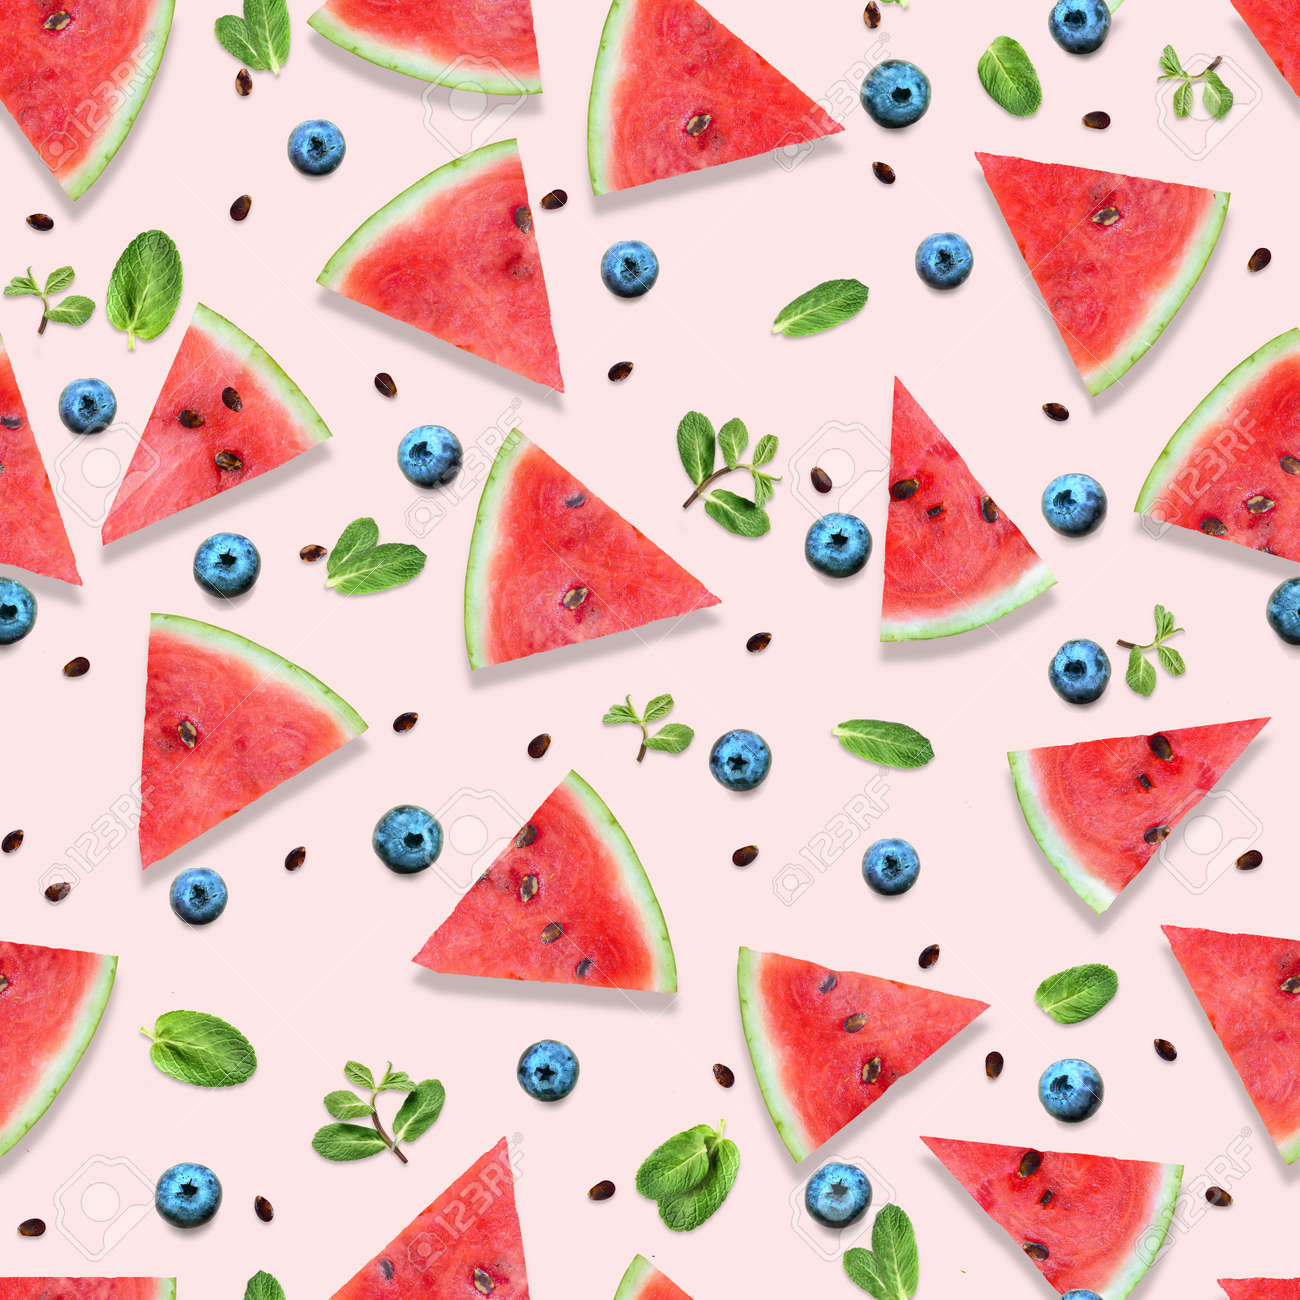 Pattern of watermelon slices with fresh mint leaves. - 171379350